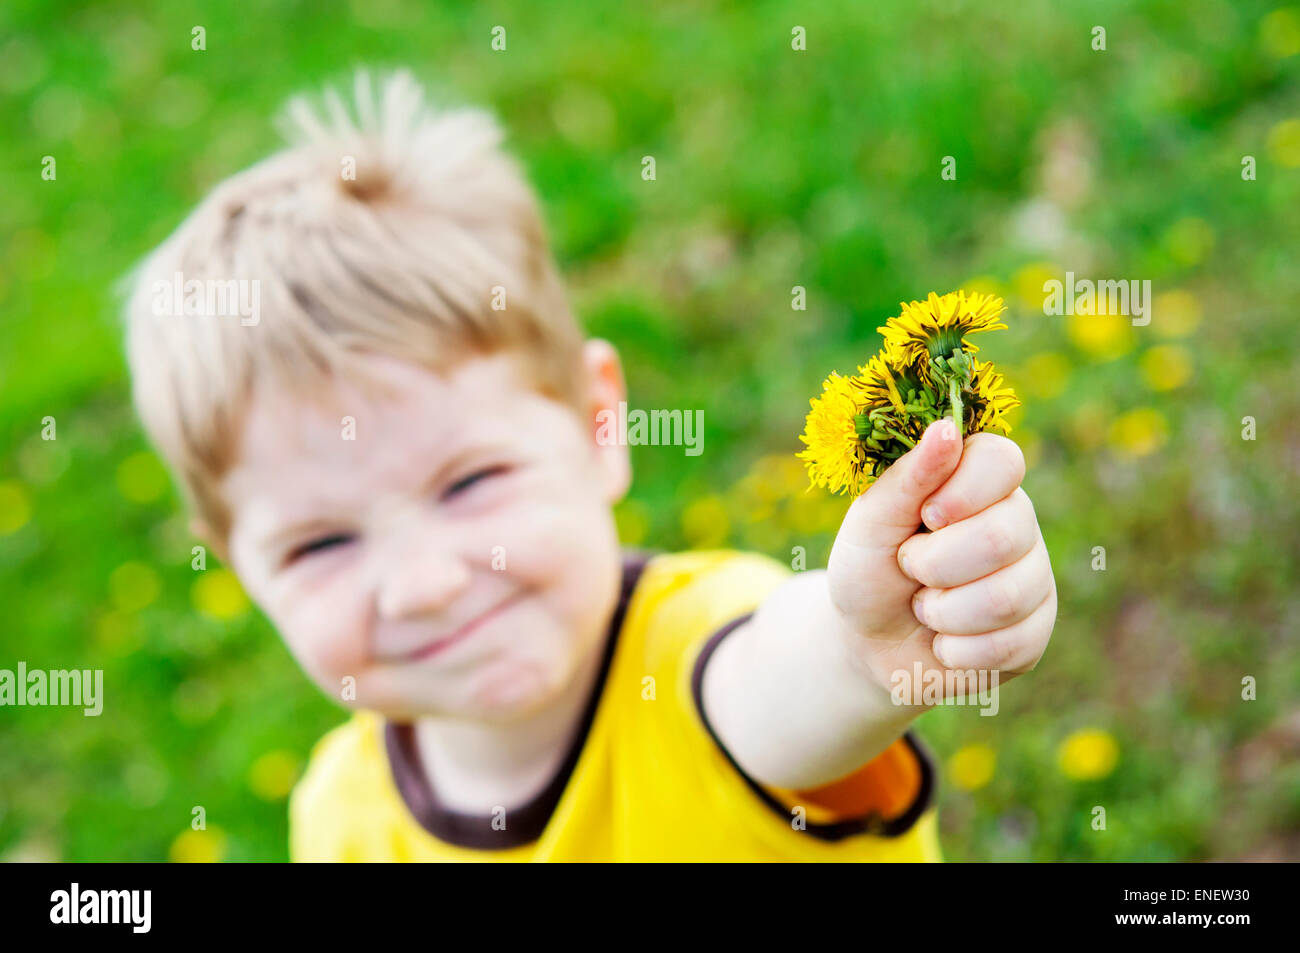 boy giving gift of dandelion flowers - Stock Image